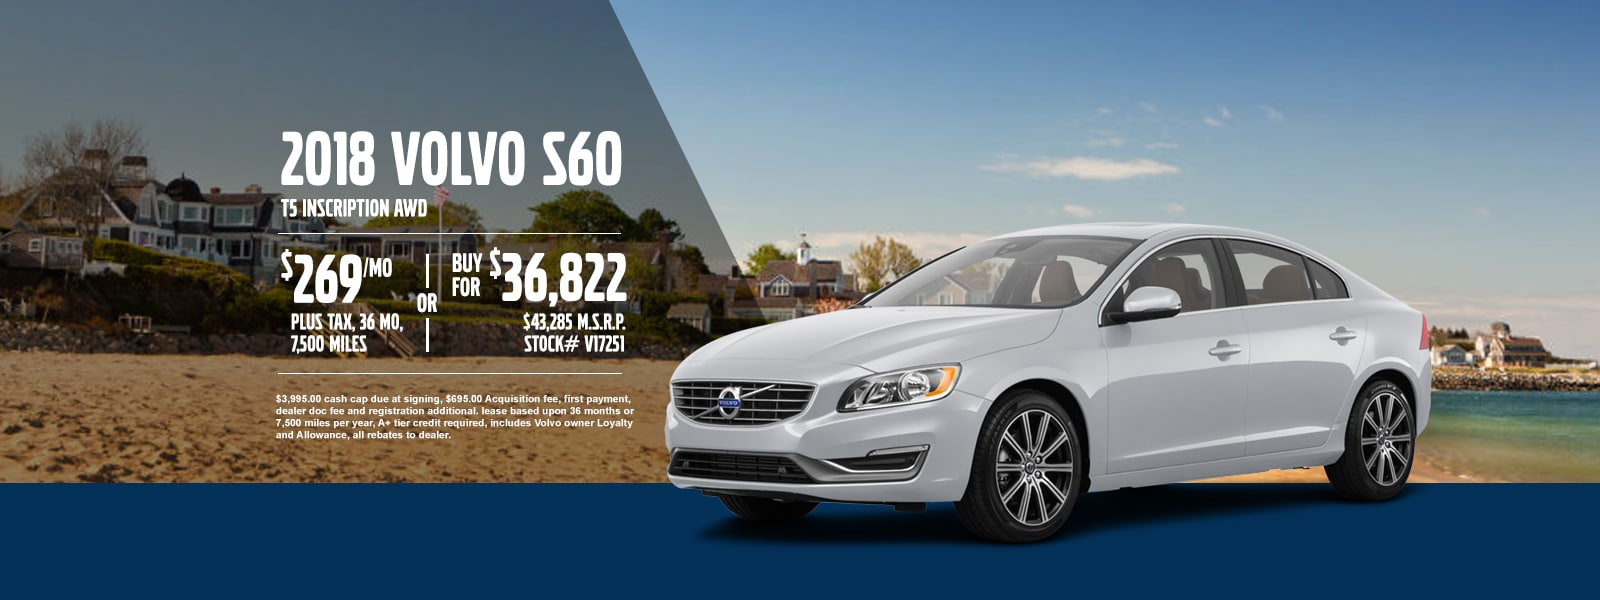 motor quarter trend rear volvo pricing in edmunds dealer dealers gallery photo used sale ri three for sedan